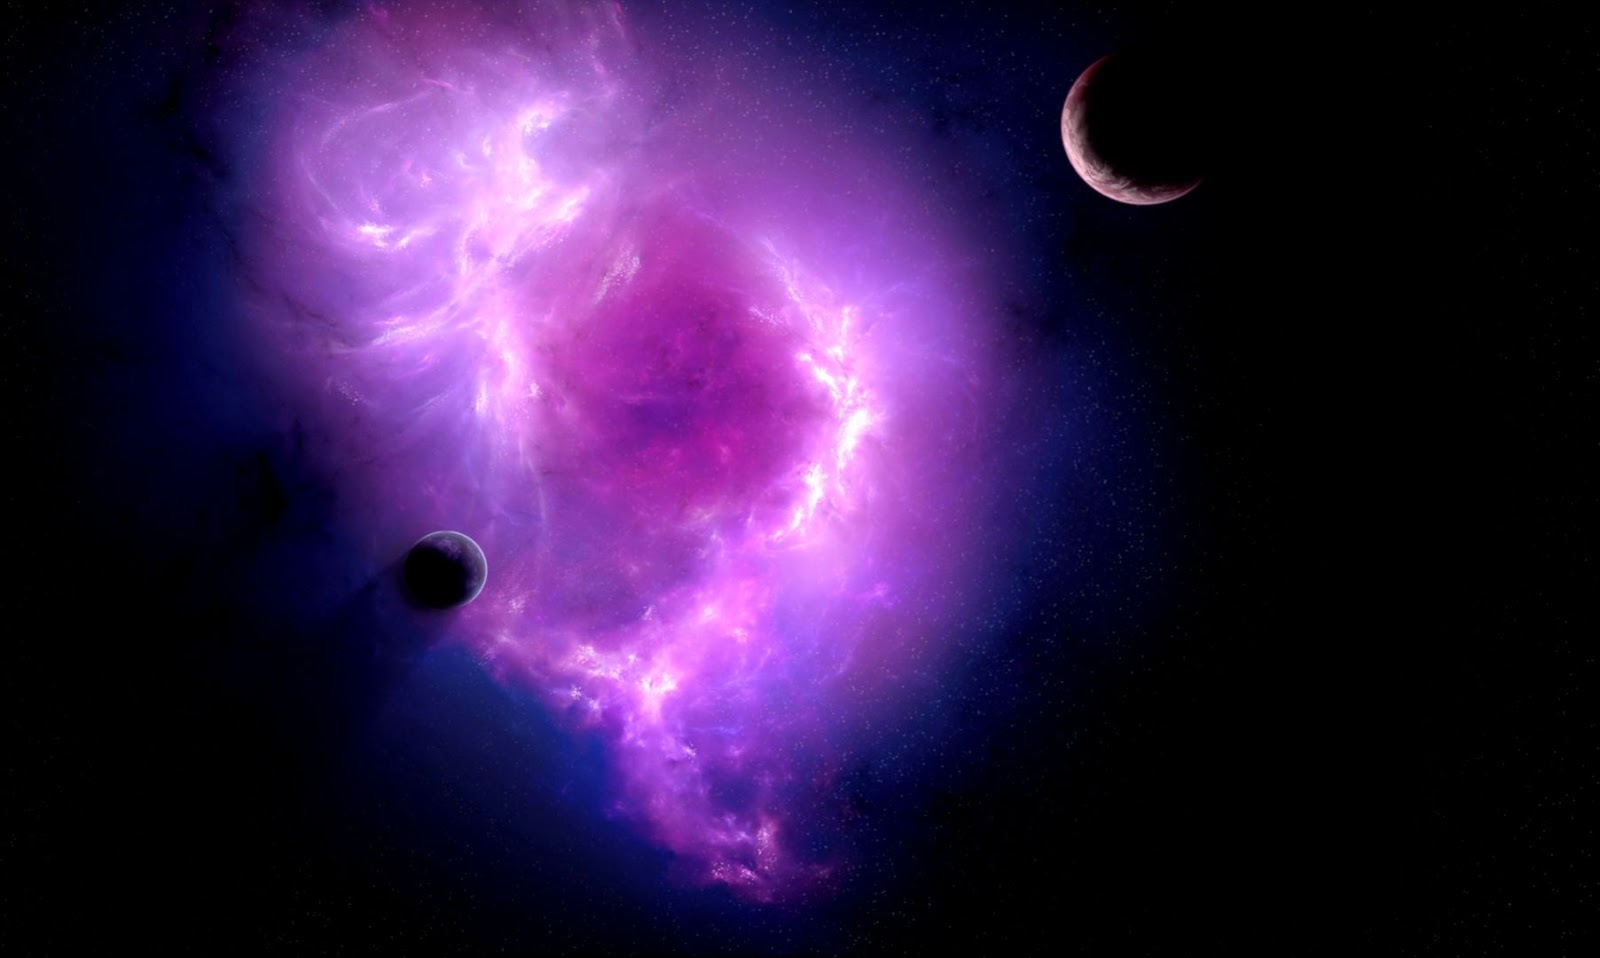 nebula space wallpapers widescreen - photo #13